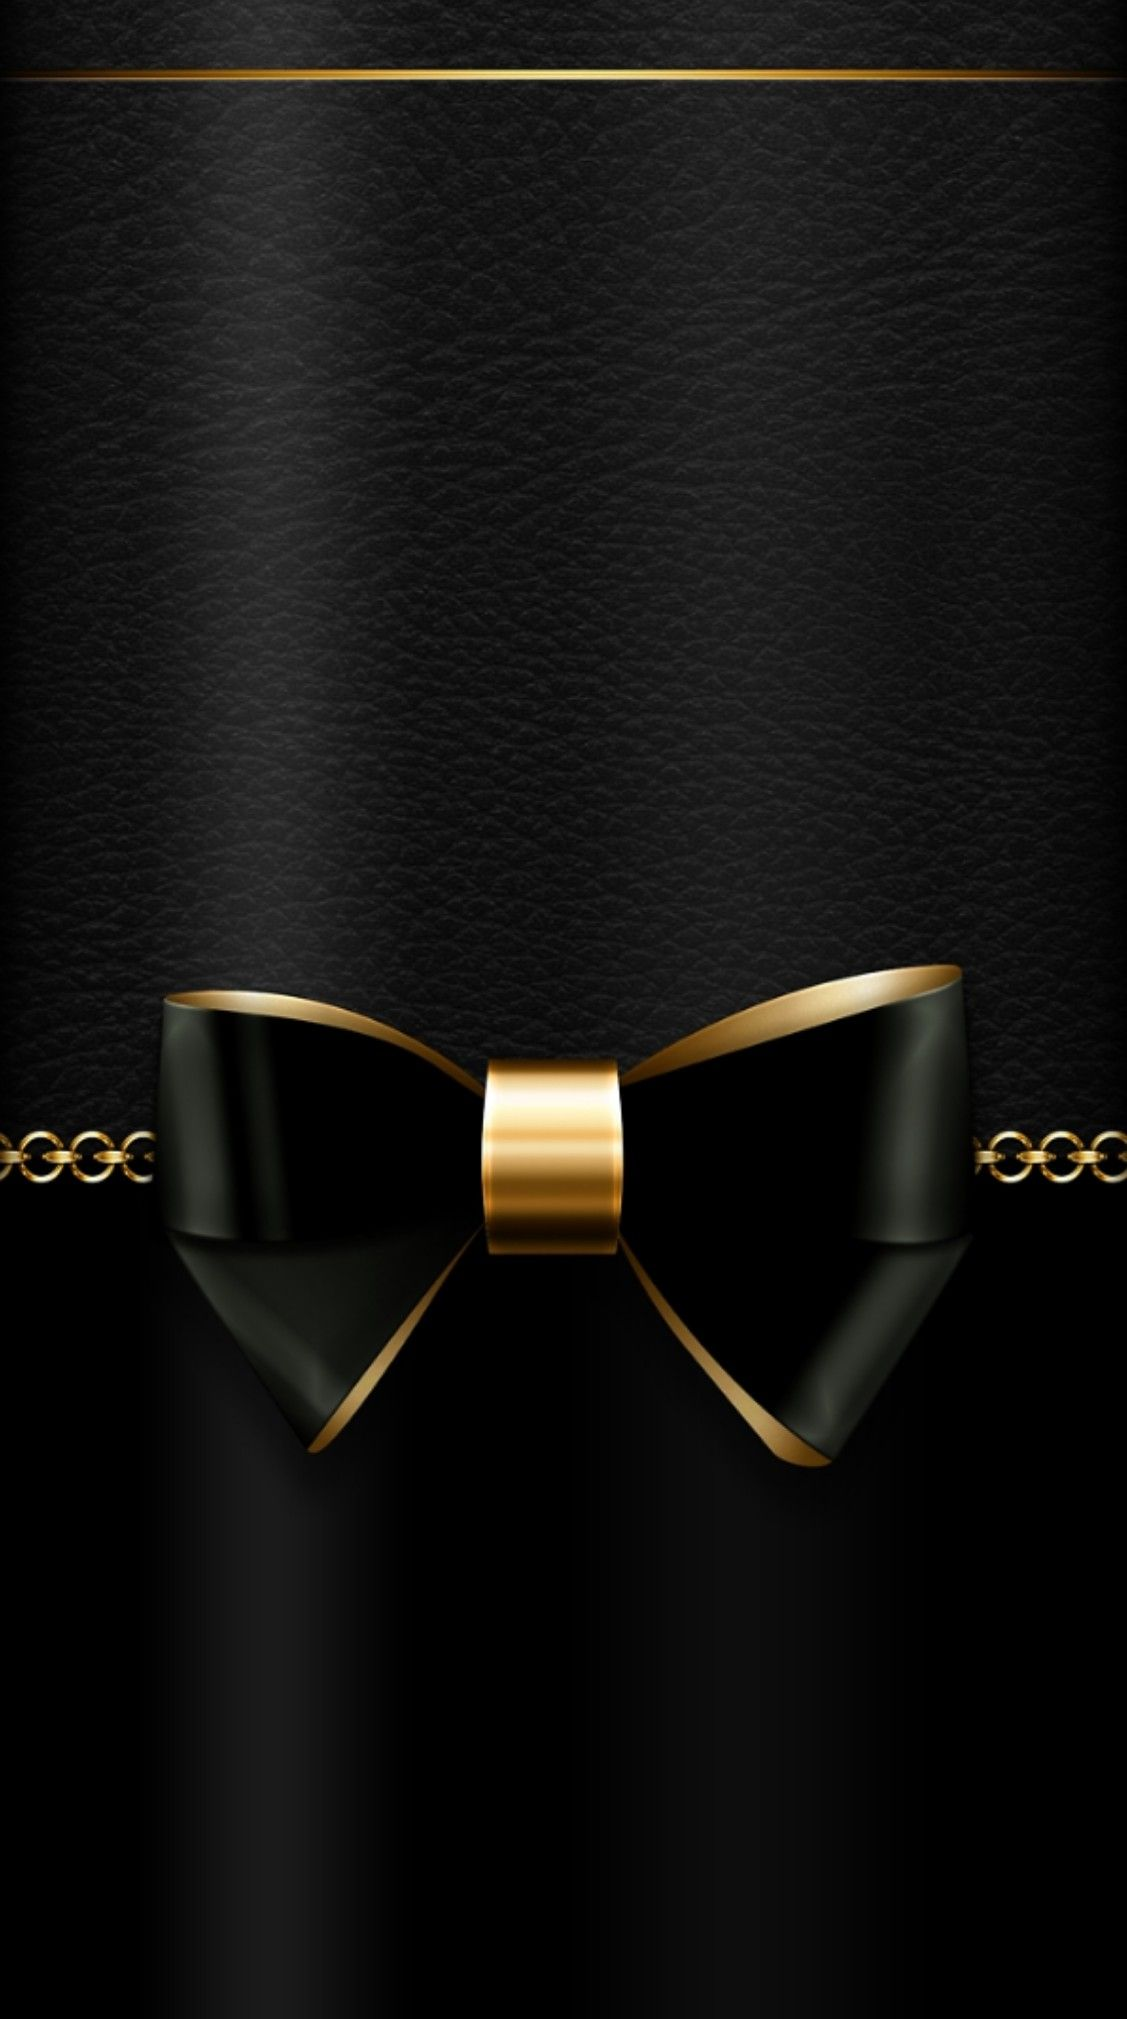 Black And Gold Cellphone Wallpaper Wallpaper For Your Phone Iphone Wallpapers Phone Backgrounds